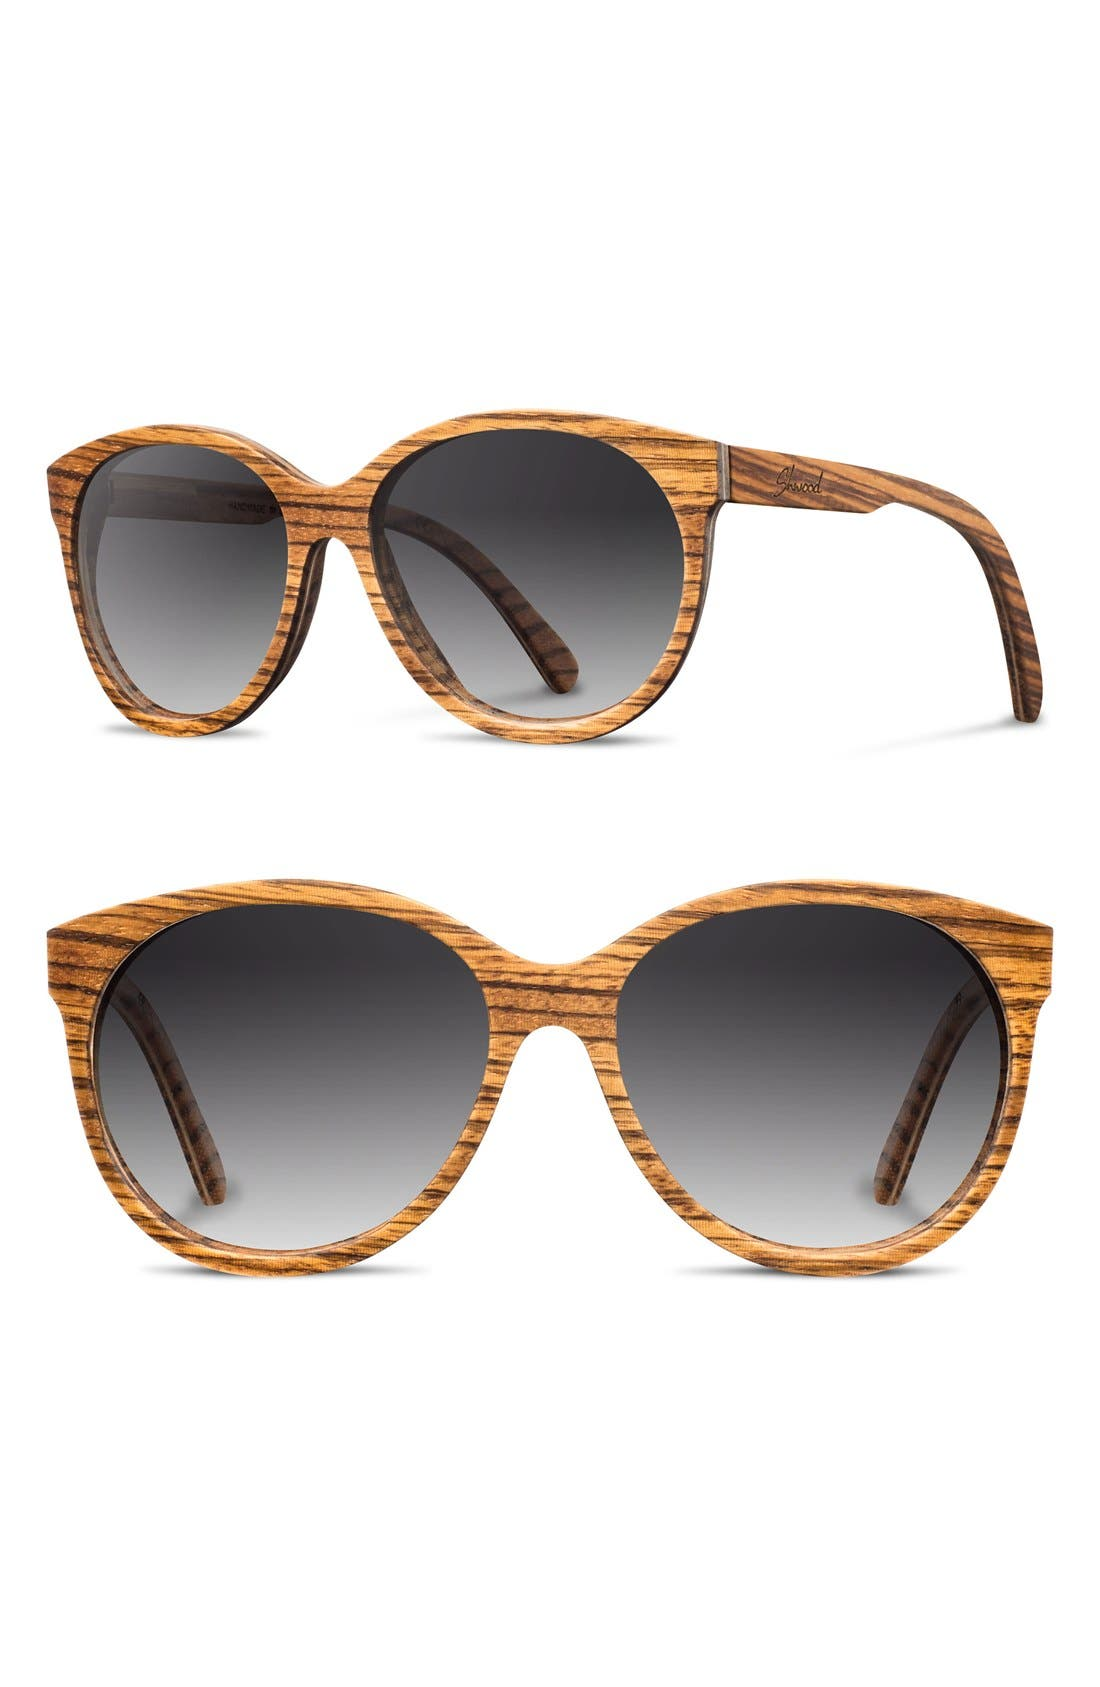 Shwood 'Madison' 54mm Polarized Round Wood Sunglasses